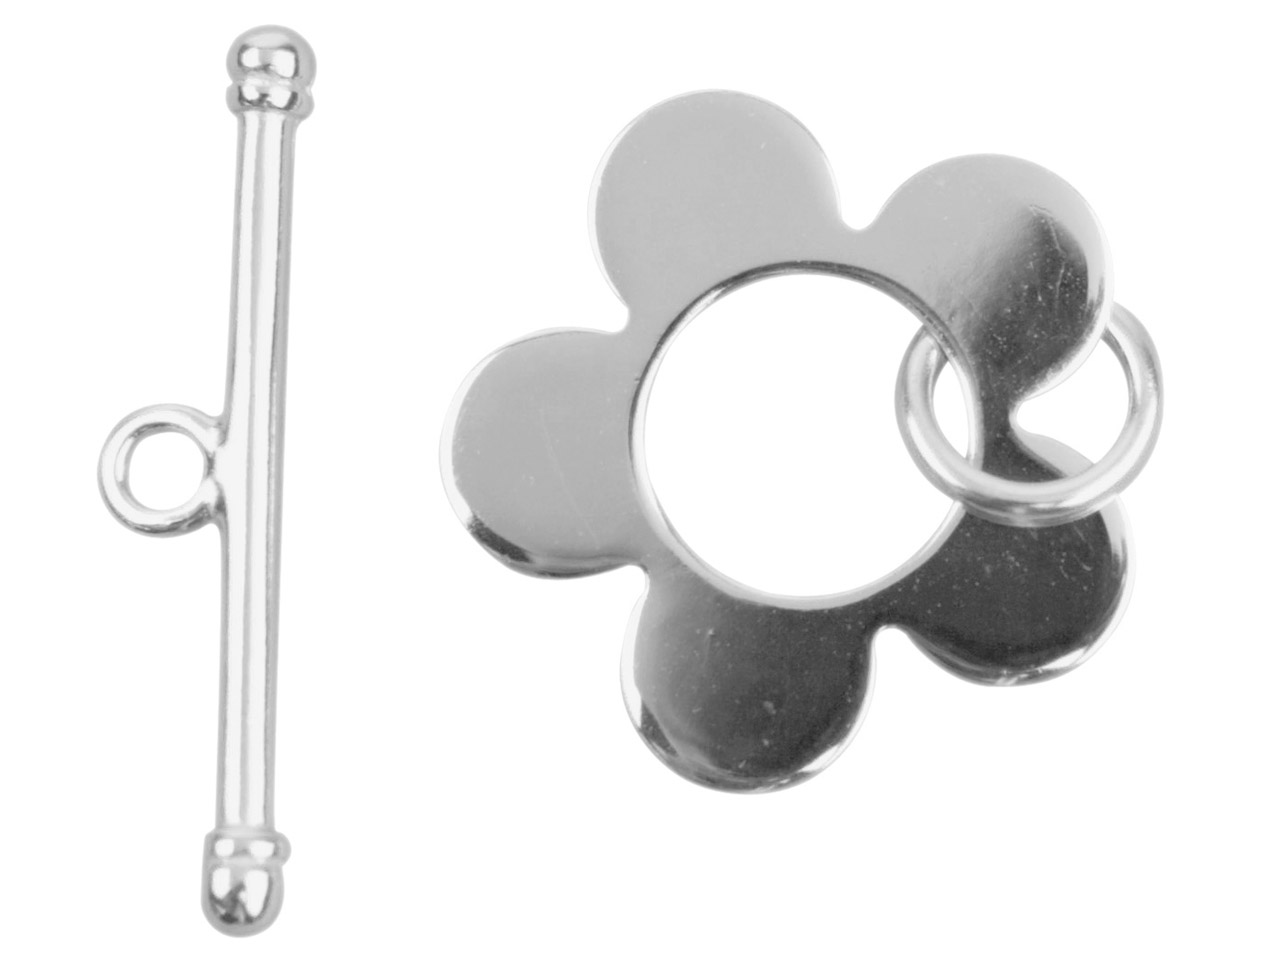 Sterling Silver Flower Ring And Bar Clasp 23mm Bar, 20mm Ring